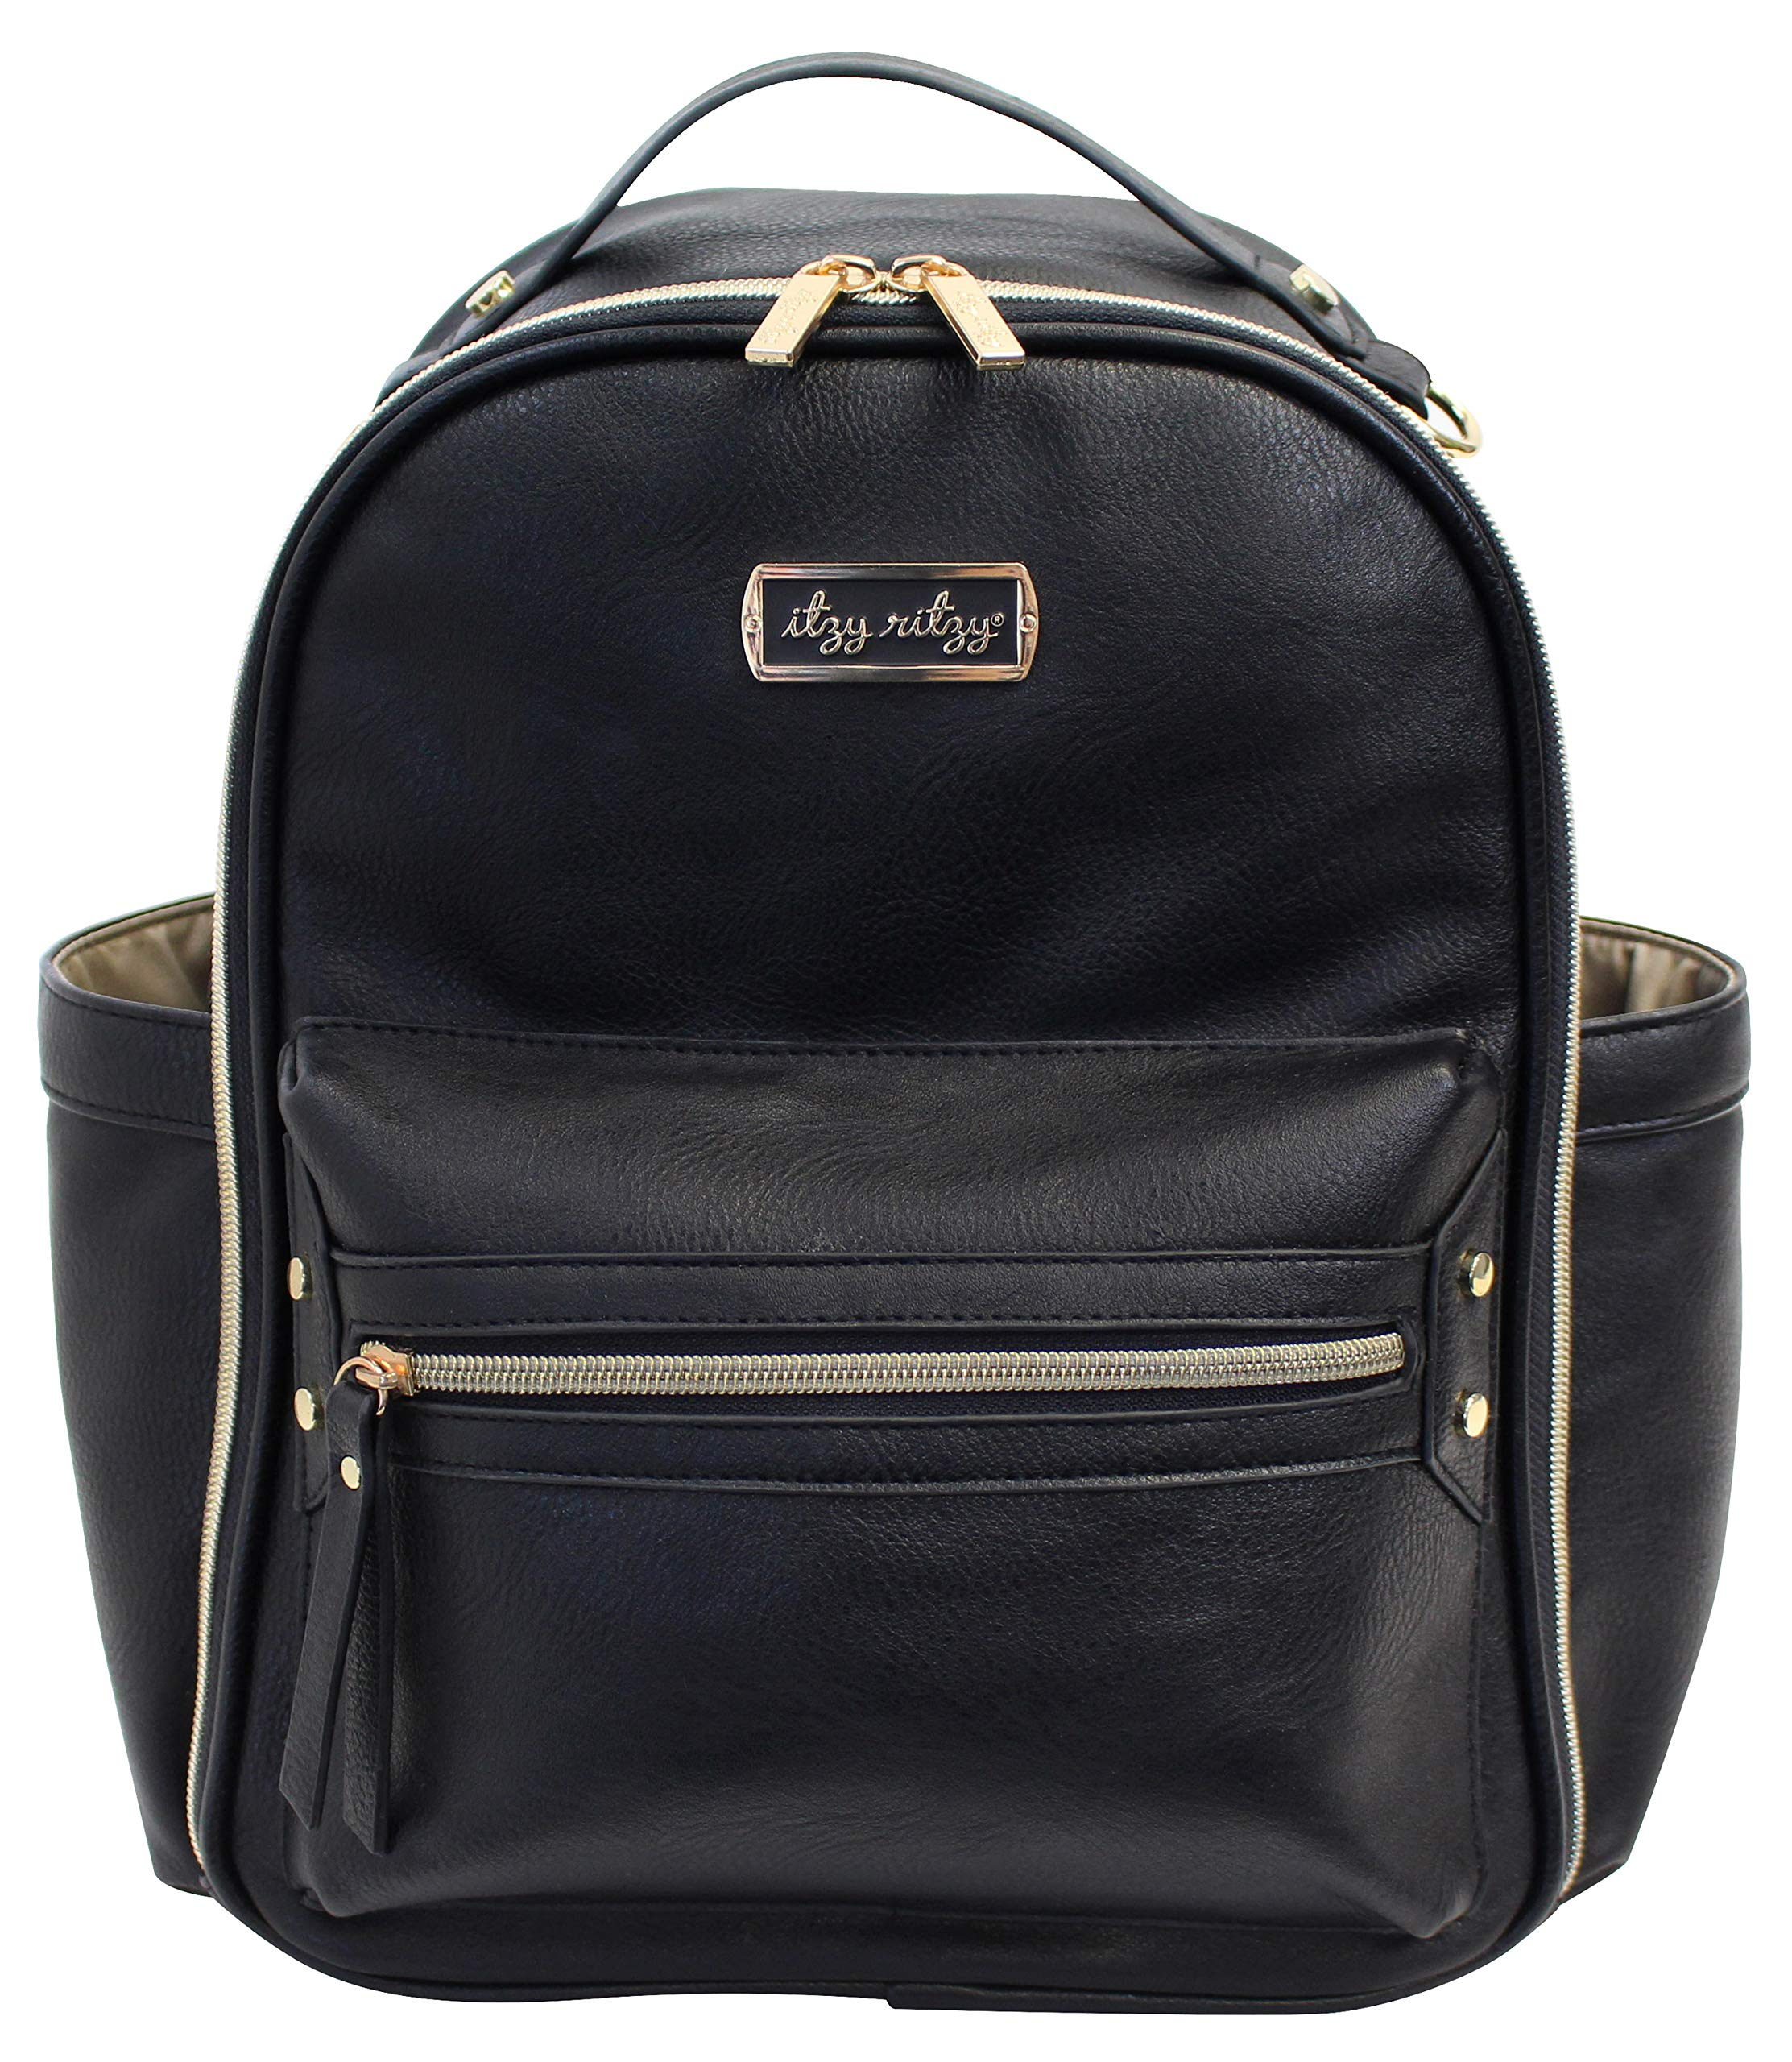 Itzy Ritzy Mini Diaper Bag Backpack - Chic Mini Diaper Bag Backpack with Vegan Leather Changing Pad, 8 Total Pockets (4 Internal and 4 External), Grab-Top Handle and Rubber Feet, Black by Itzy Ritzy